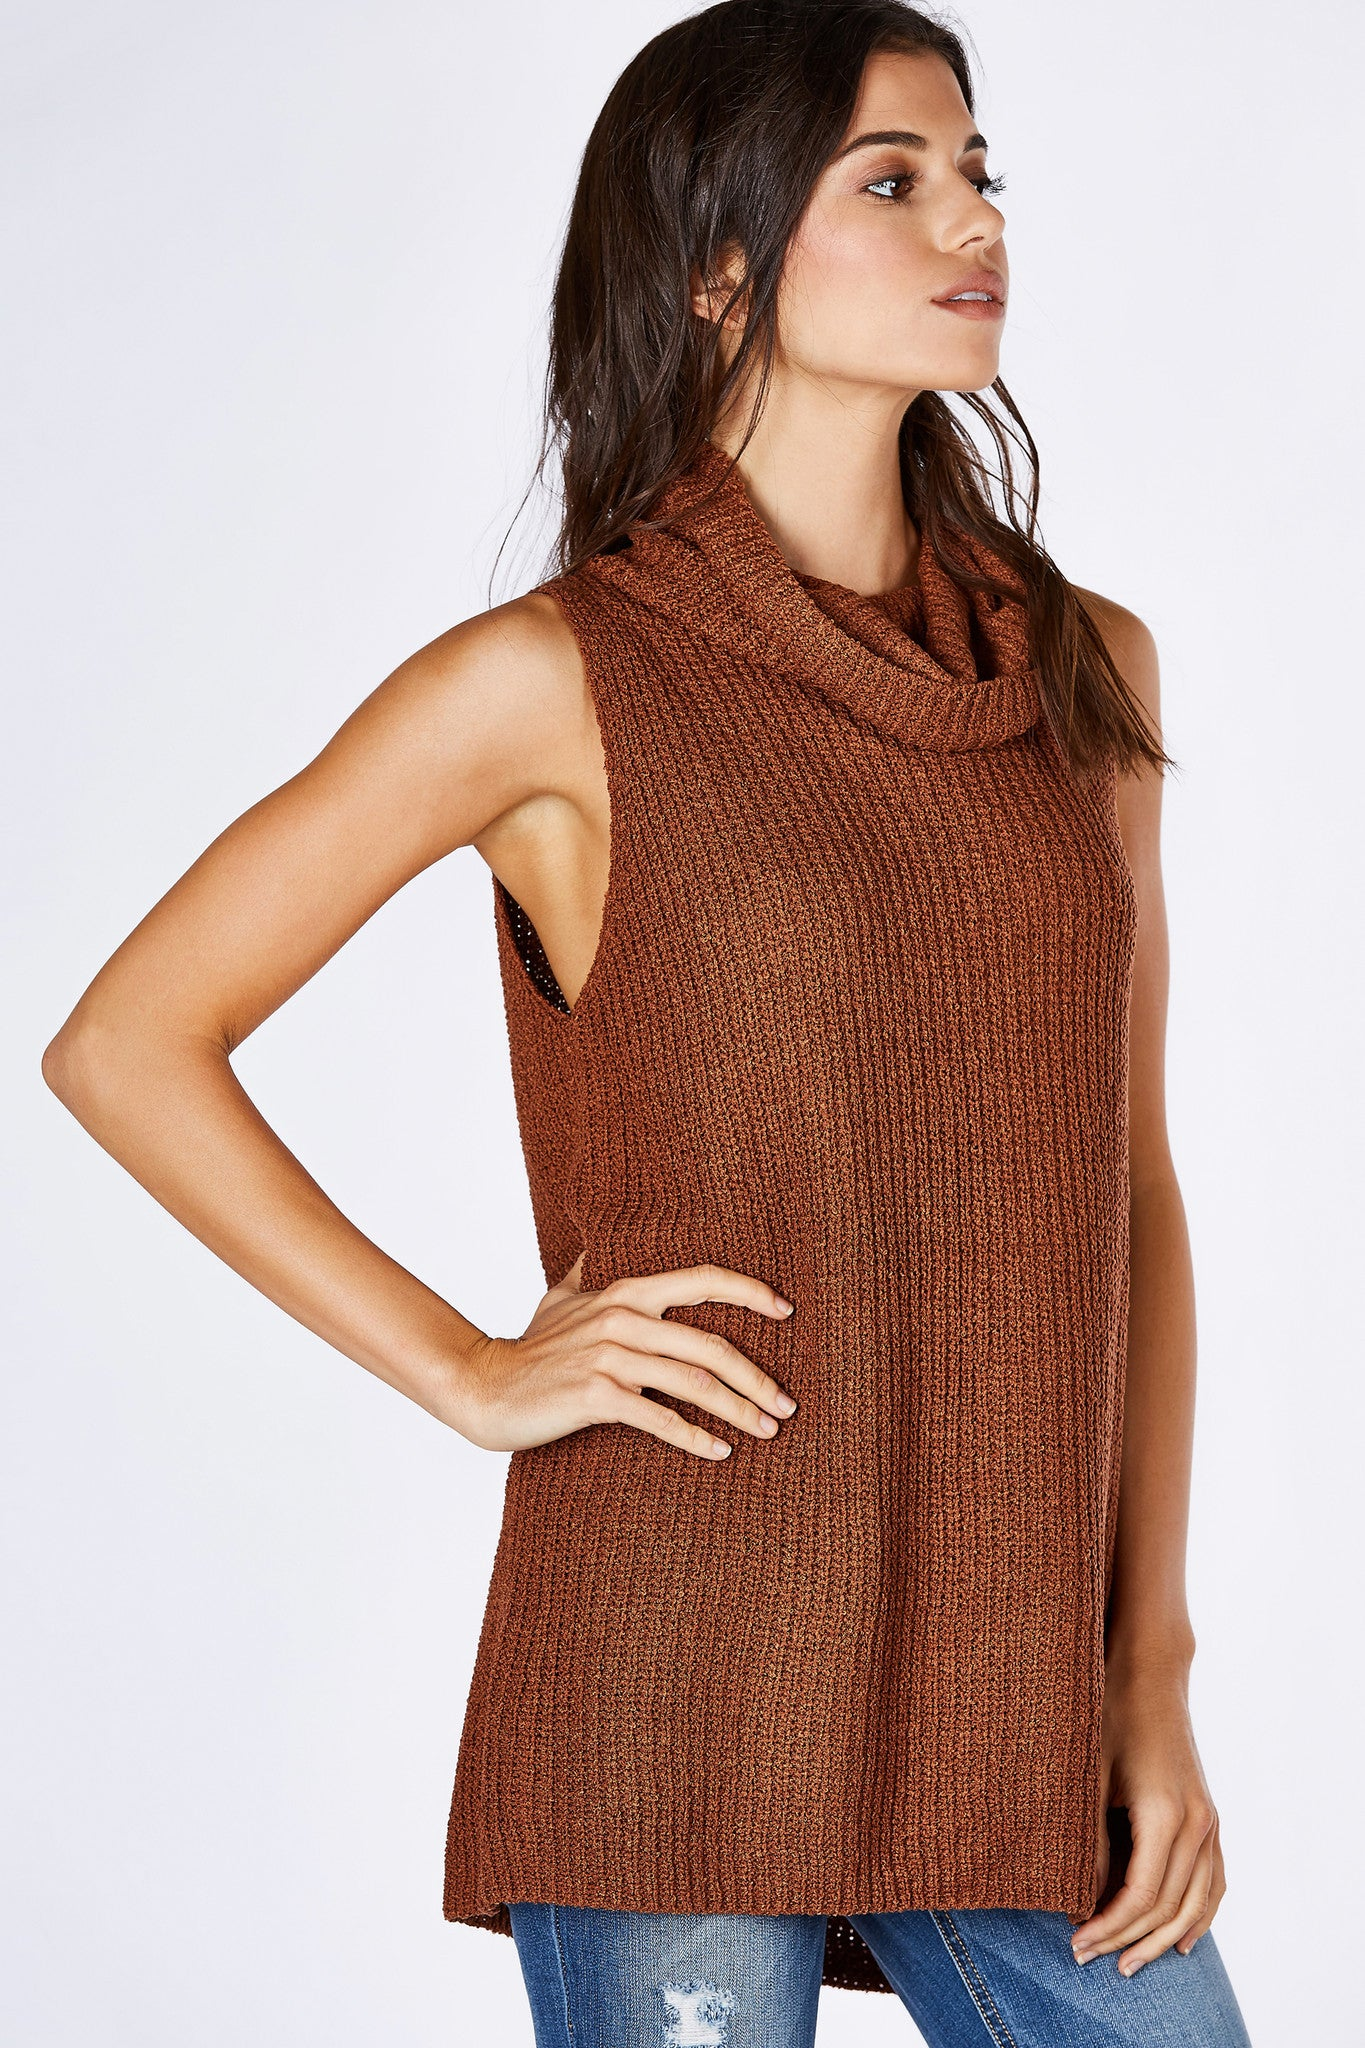 A staple piece for Autumn. Cozy turtleneck for style and warmth. Sleeveless to make it easy to layer under cardigans and light jackets. Straight hem with a trendy slit in the back for added detail. Pair with skinny jeans and ankle booties!